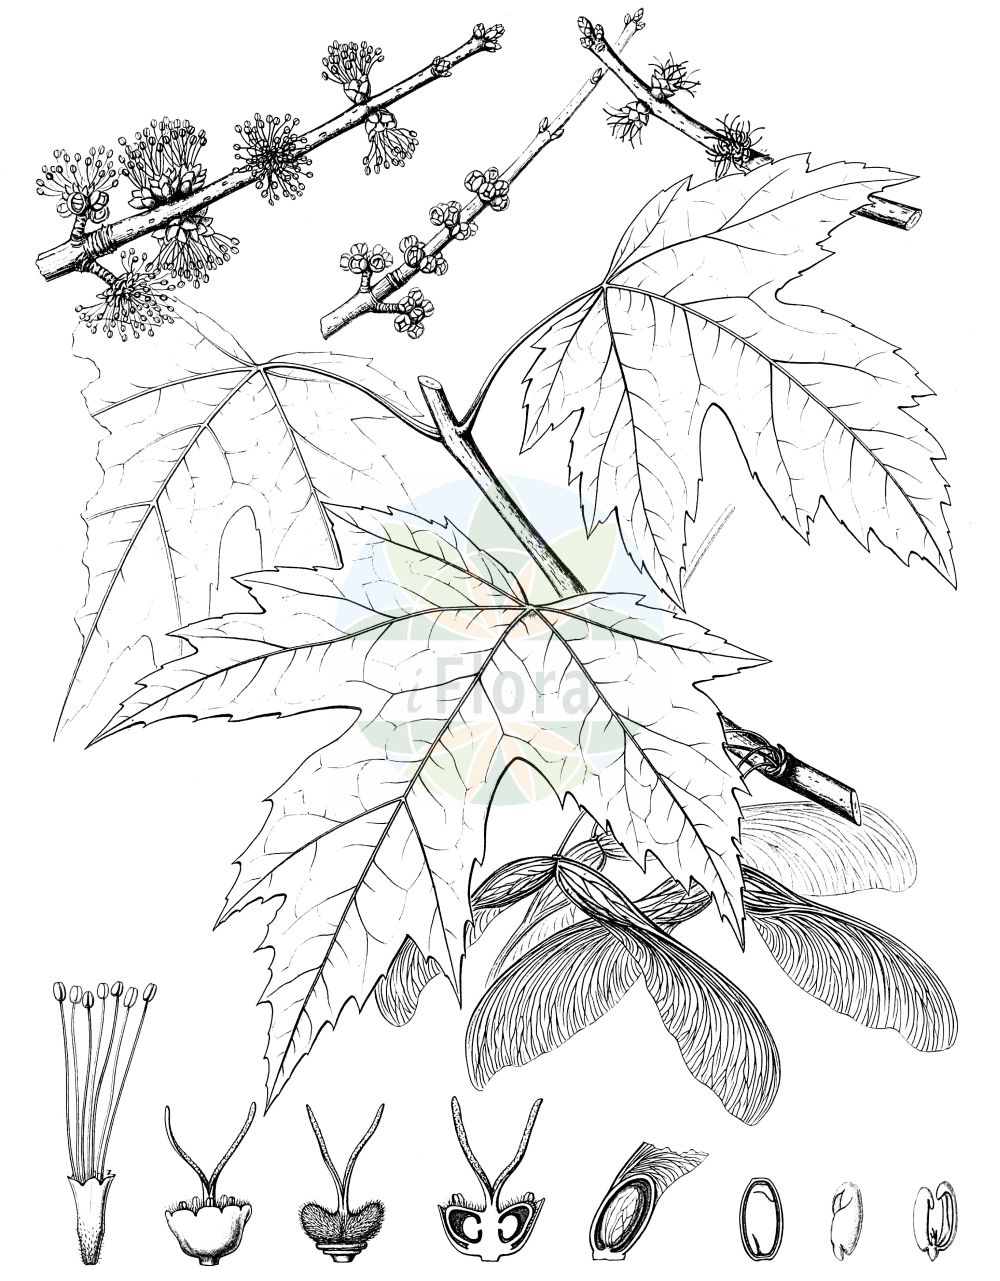 Historische Abbildung von Acer saccharinum (Silber-Ahorn - Silver Maple). Das Bild zeigt Blatt, Bluete, Frucht und Same. ---- Historical Drawing of Acer saccharinum (Silber-Ahorn - Silver Maple).The image is showing leaf, flower, fruit and seed.(Acer saccharinum,Silber-Ahorn,Silver Maple,Acer dasycarpum,Acer saccharinum,Silber-Ahorn,Silver Maple,Creek Maple,River Maple,Silverleaf Maple,Soft Maple,Swamp Maple,Water Maple,White Maple,Sugar Maple,Acer,Ahorn,Maple,Sapindaceae,Seifenbaumgewaechse,Soapberry family,Blatt,Bluete,Frucht,Same,leaf,flower,fruit,seed,Sargent (1898-1902))